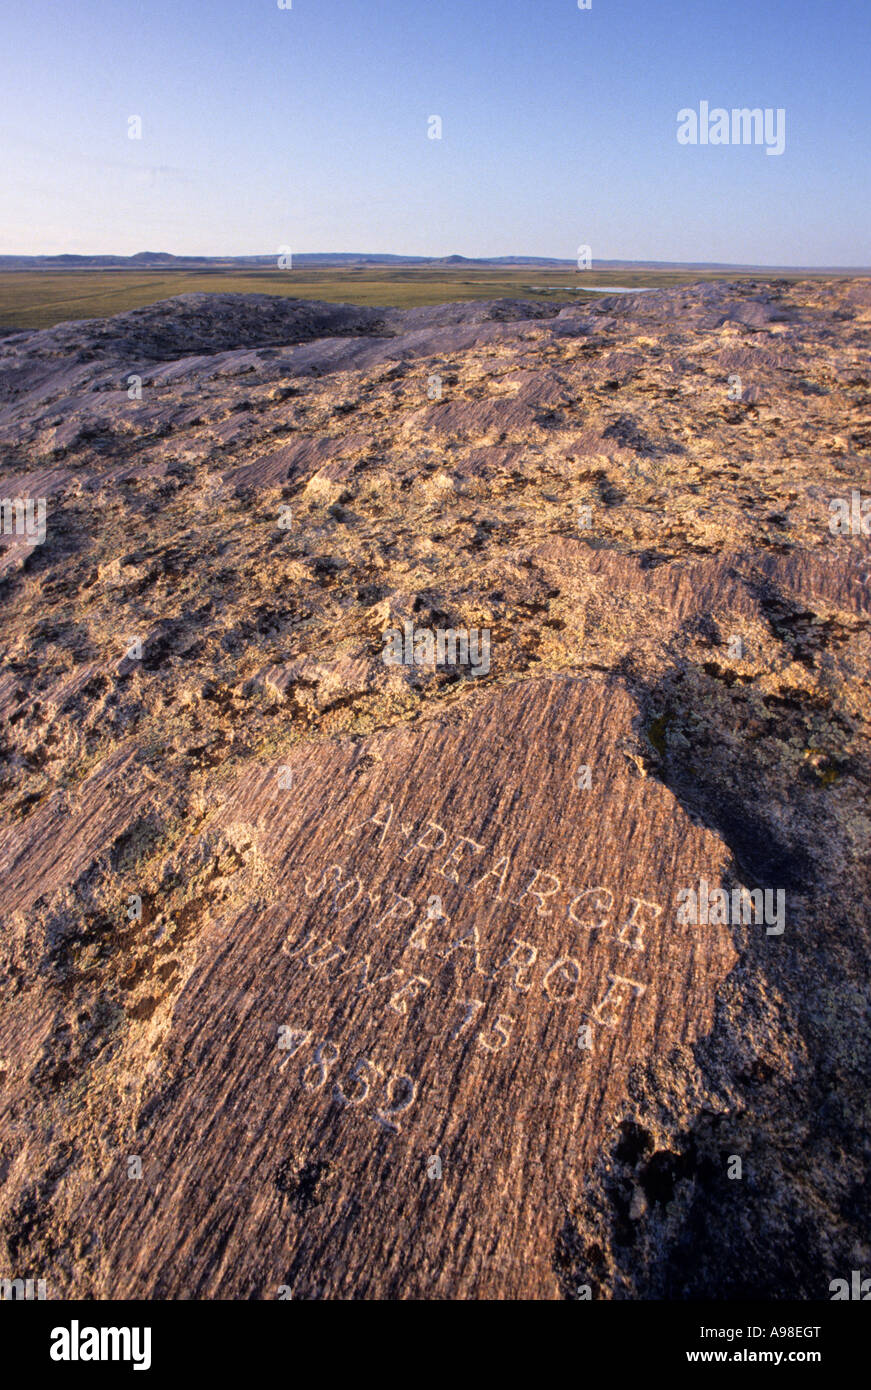 Names carved on independence rock future story